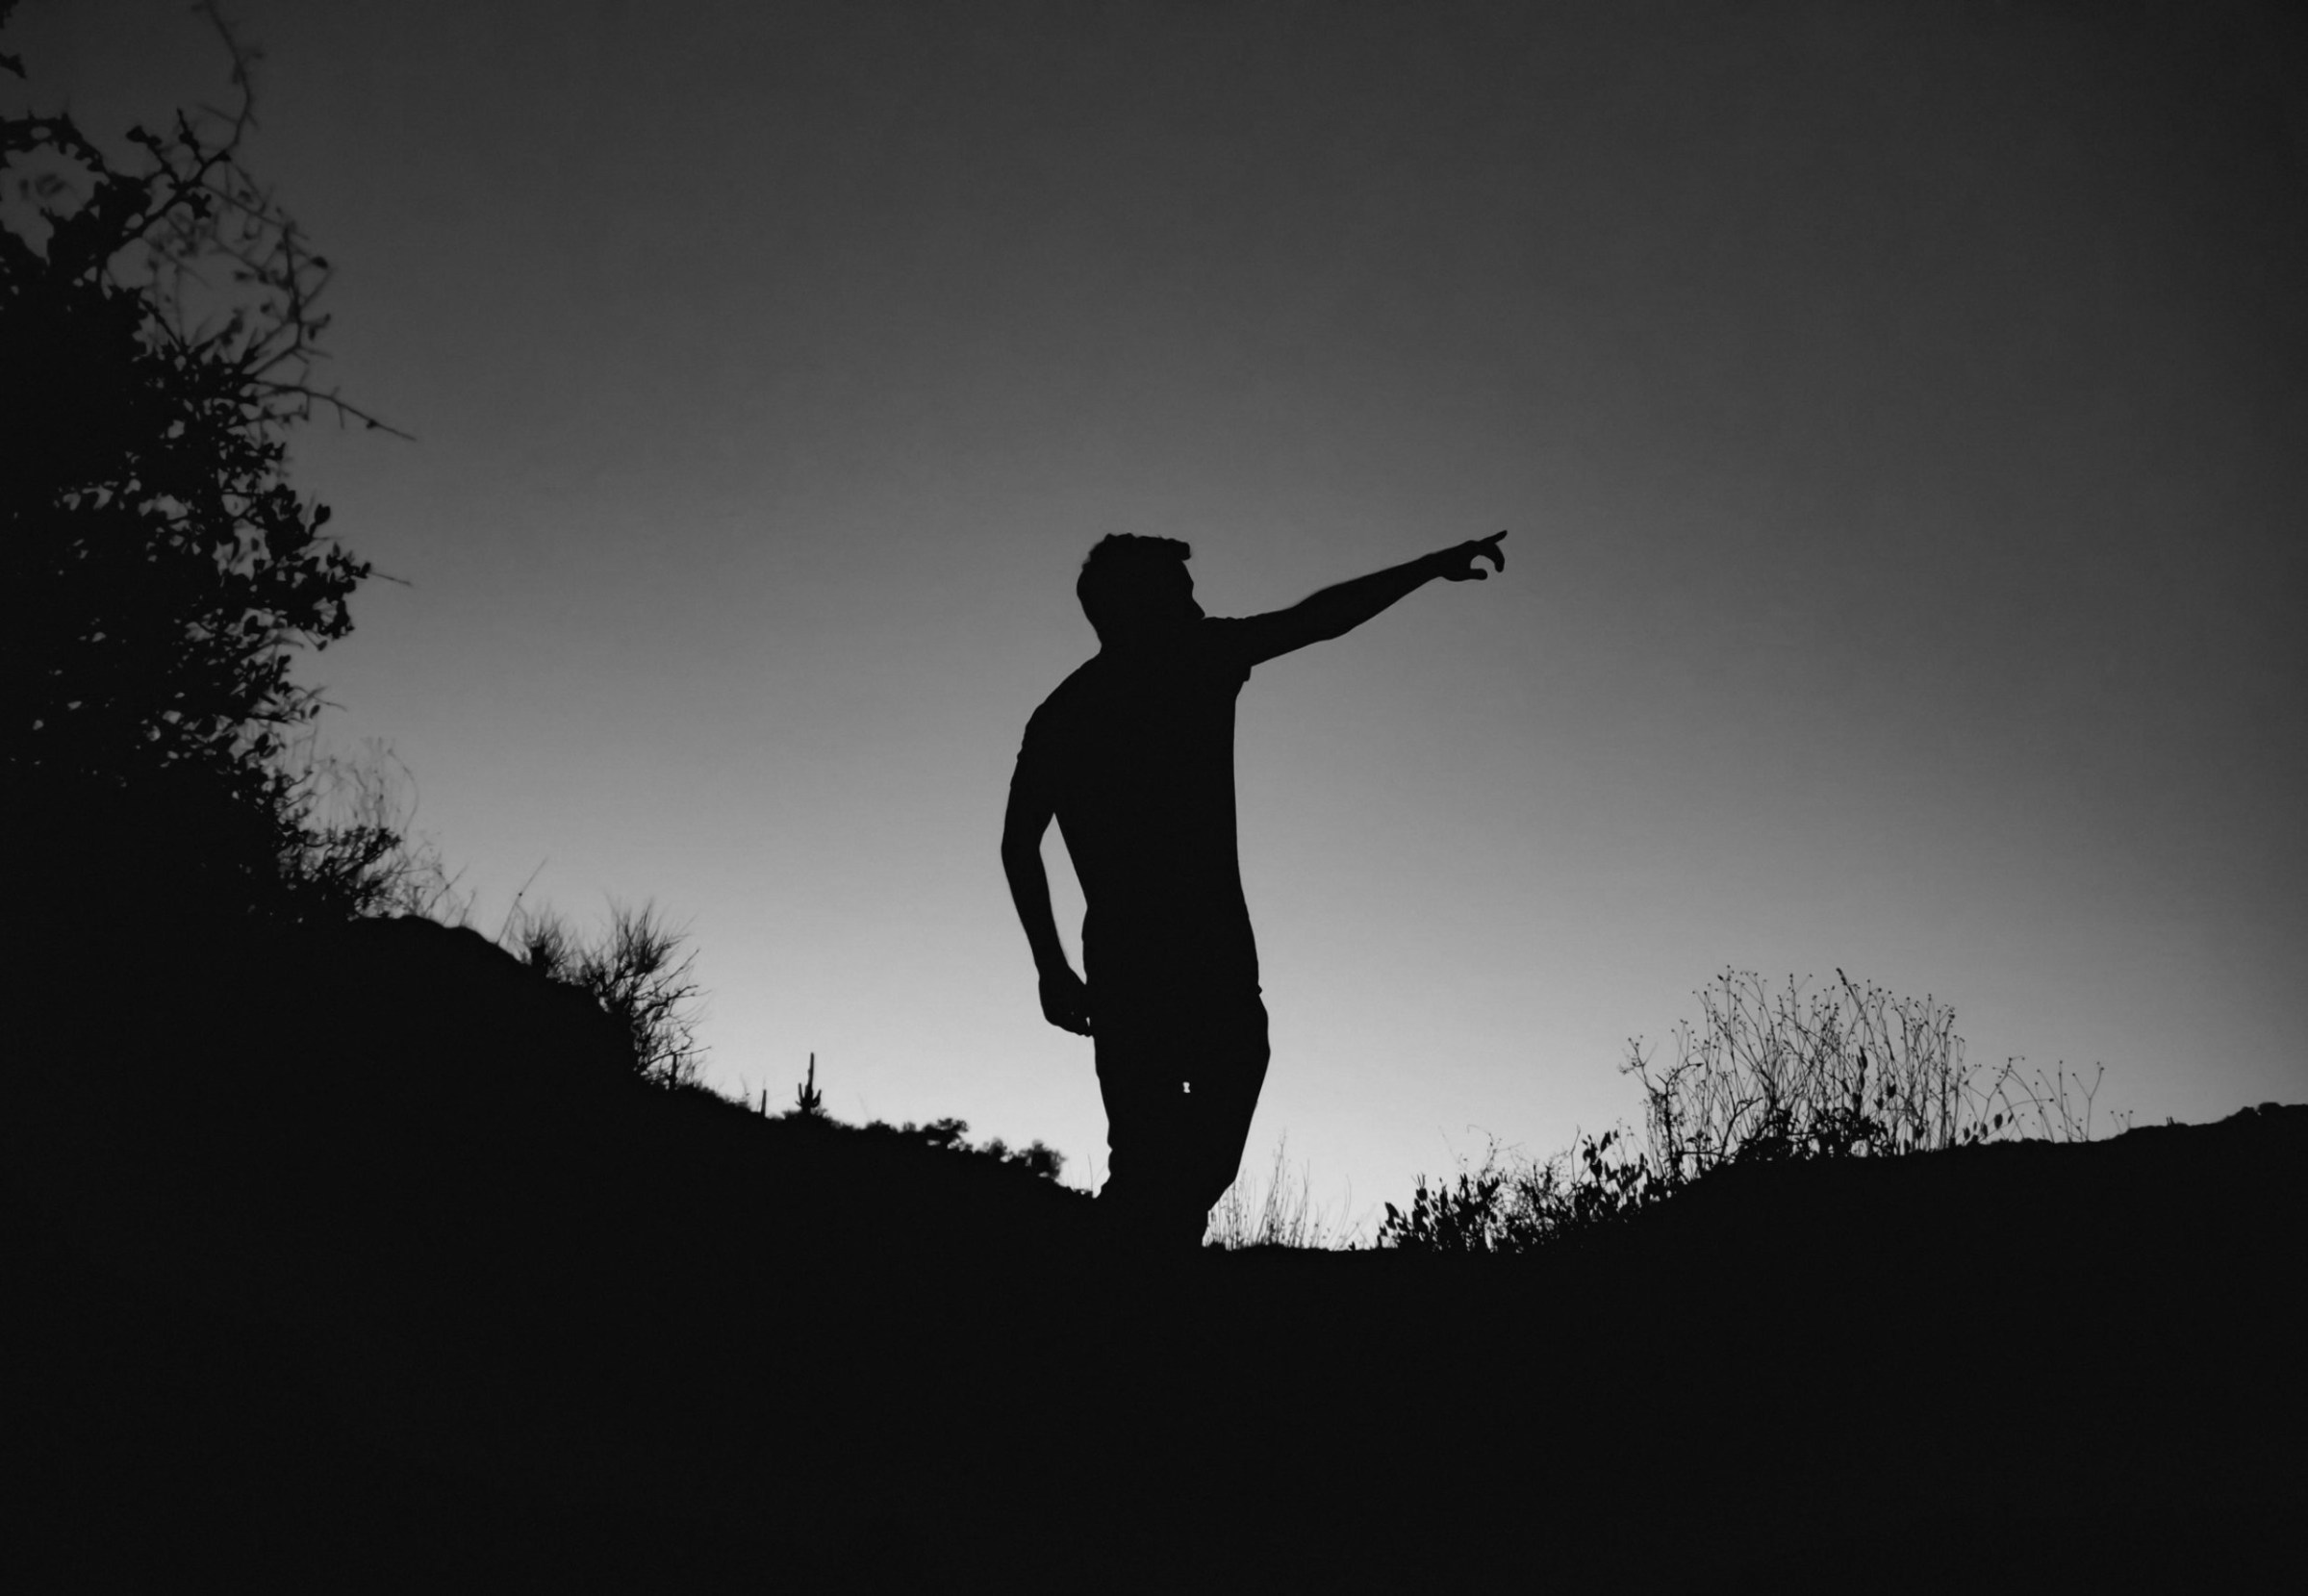 man in silhouette photo standing on cliff